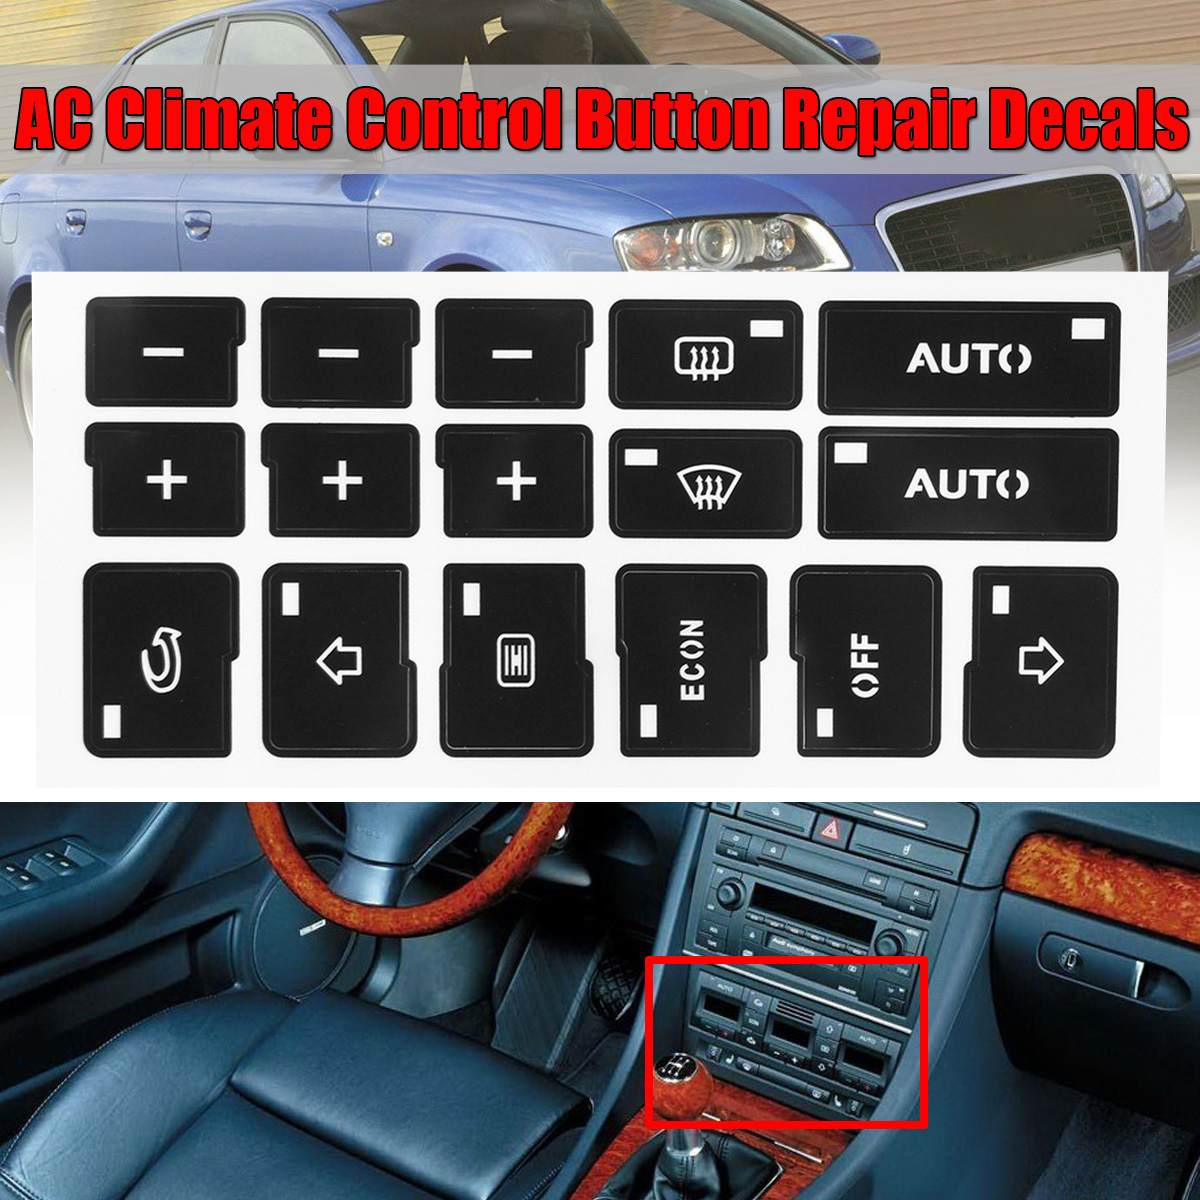 Car Air Condition AC Climate Control Button Repair Stickers Decals For Audi A4 B6 B7 2000 2001 2002 2003 2004